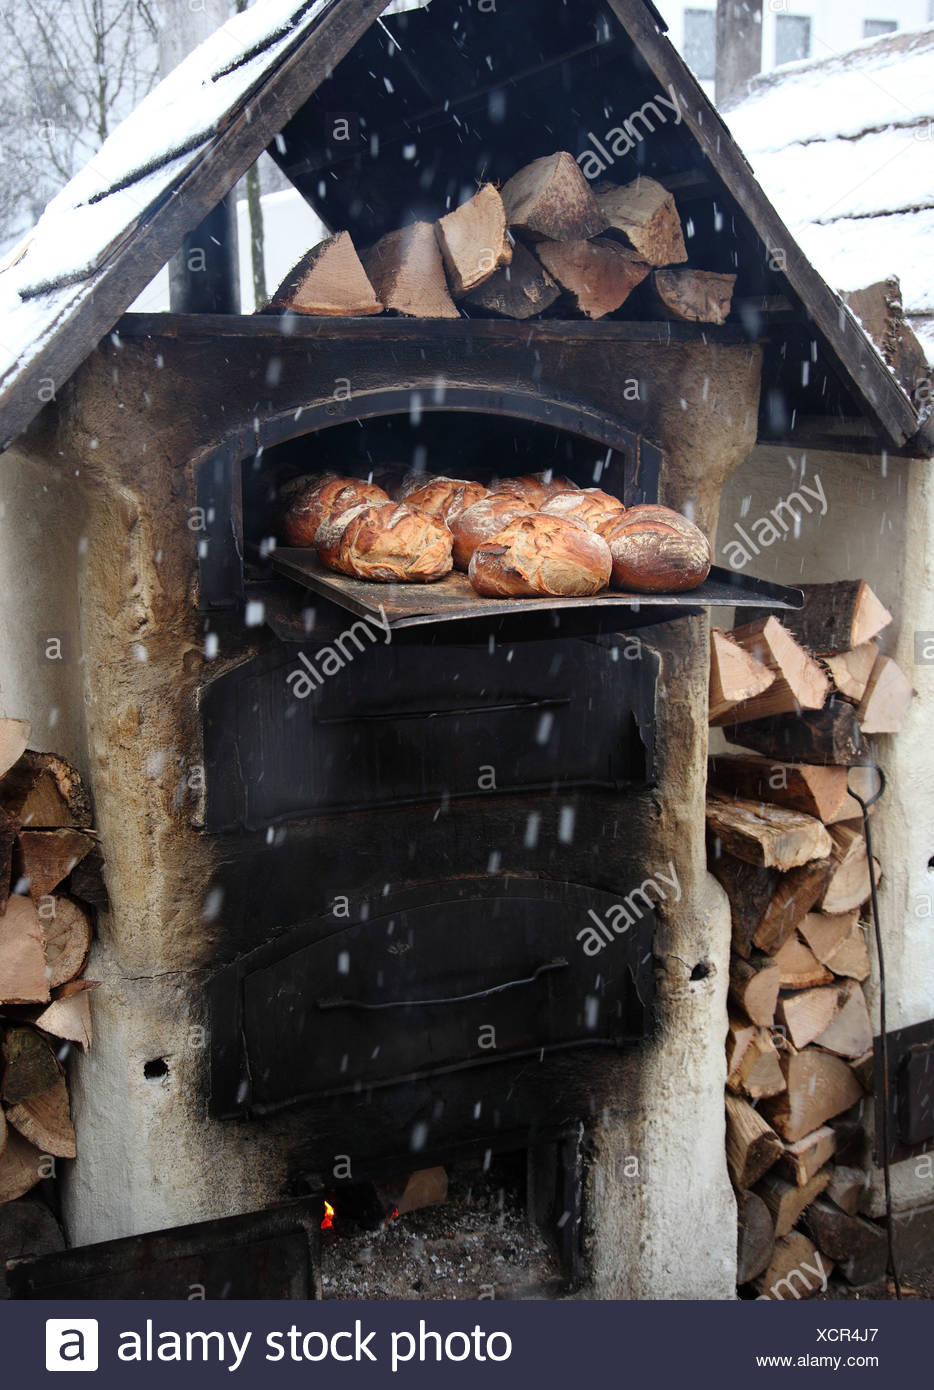 tradition,bread,rustic,stone oven,wood oven - Stock Image